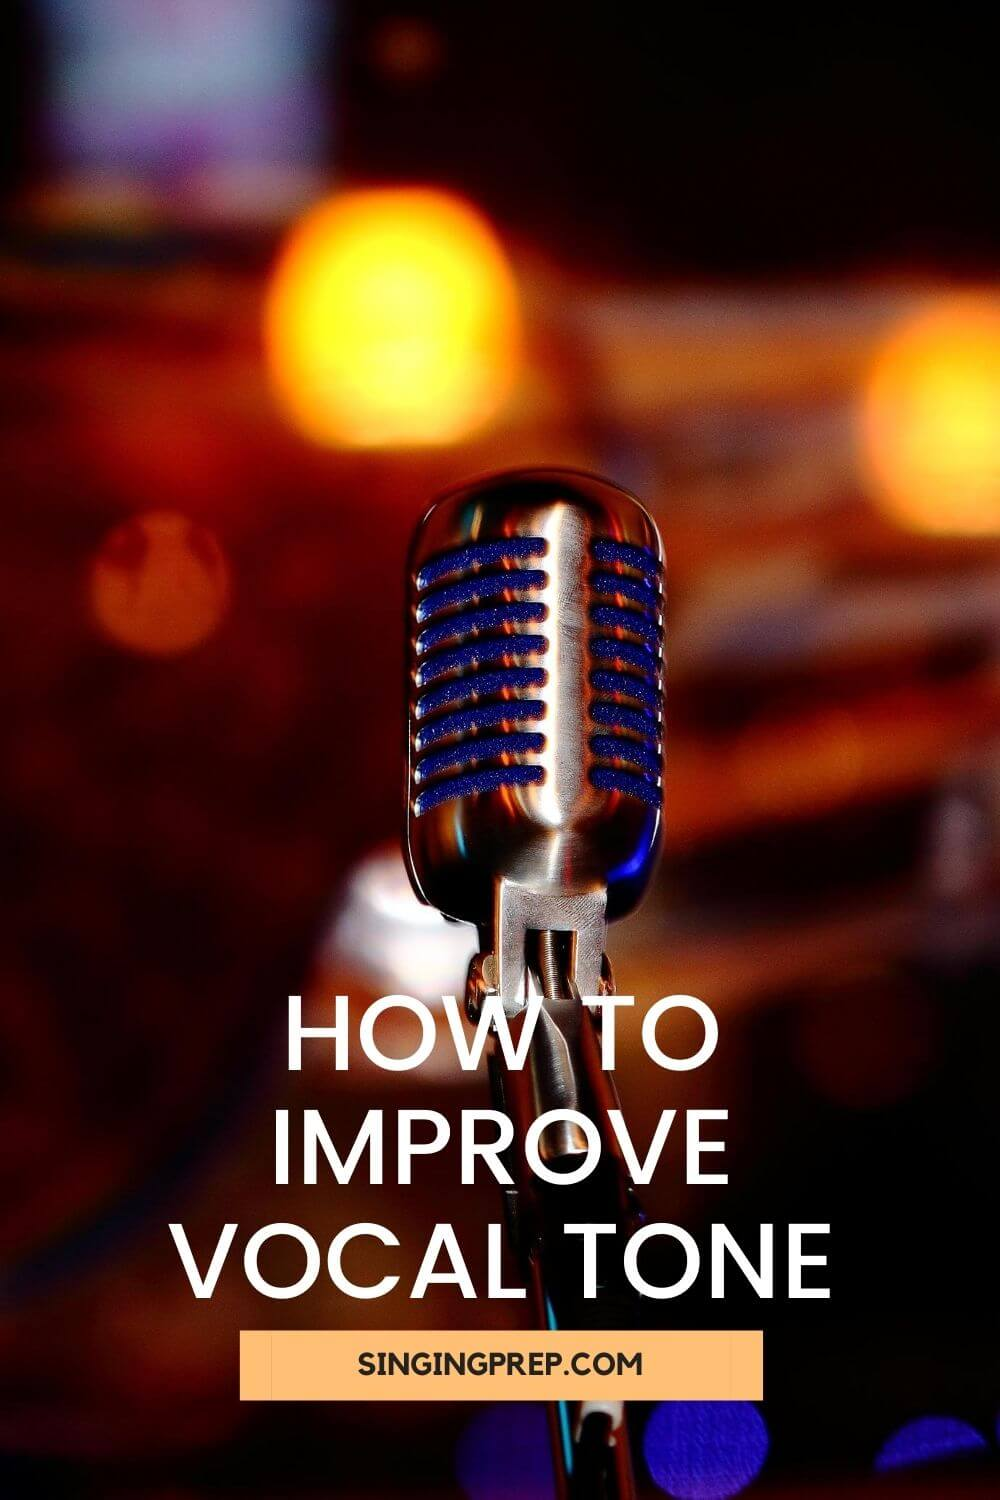 How to improve vocal tone pin